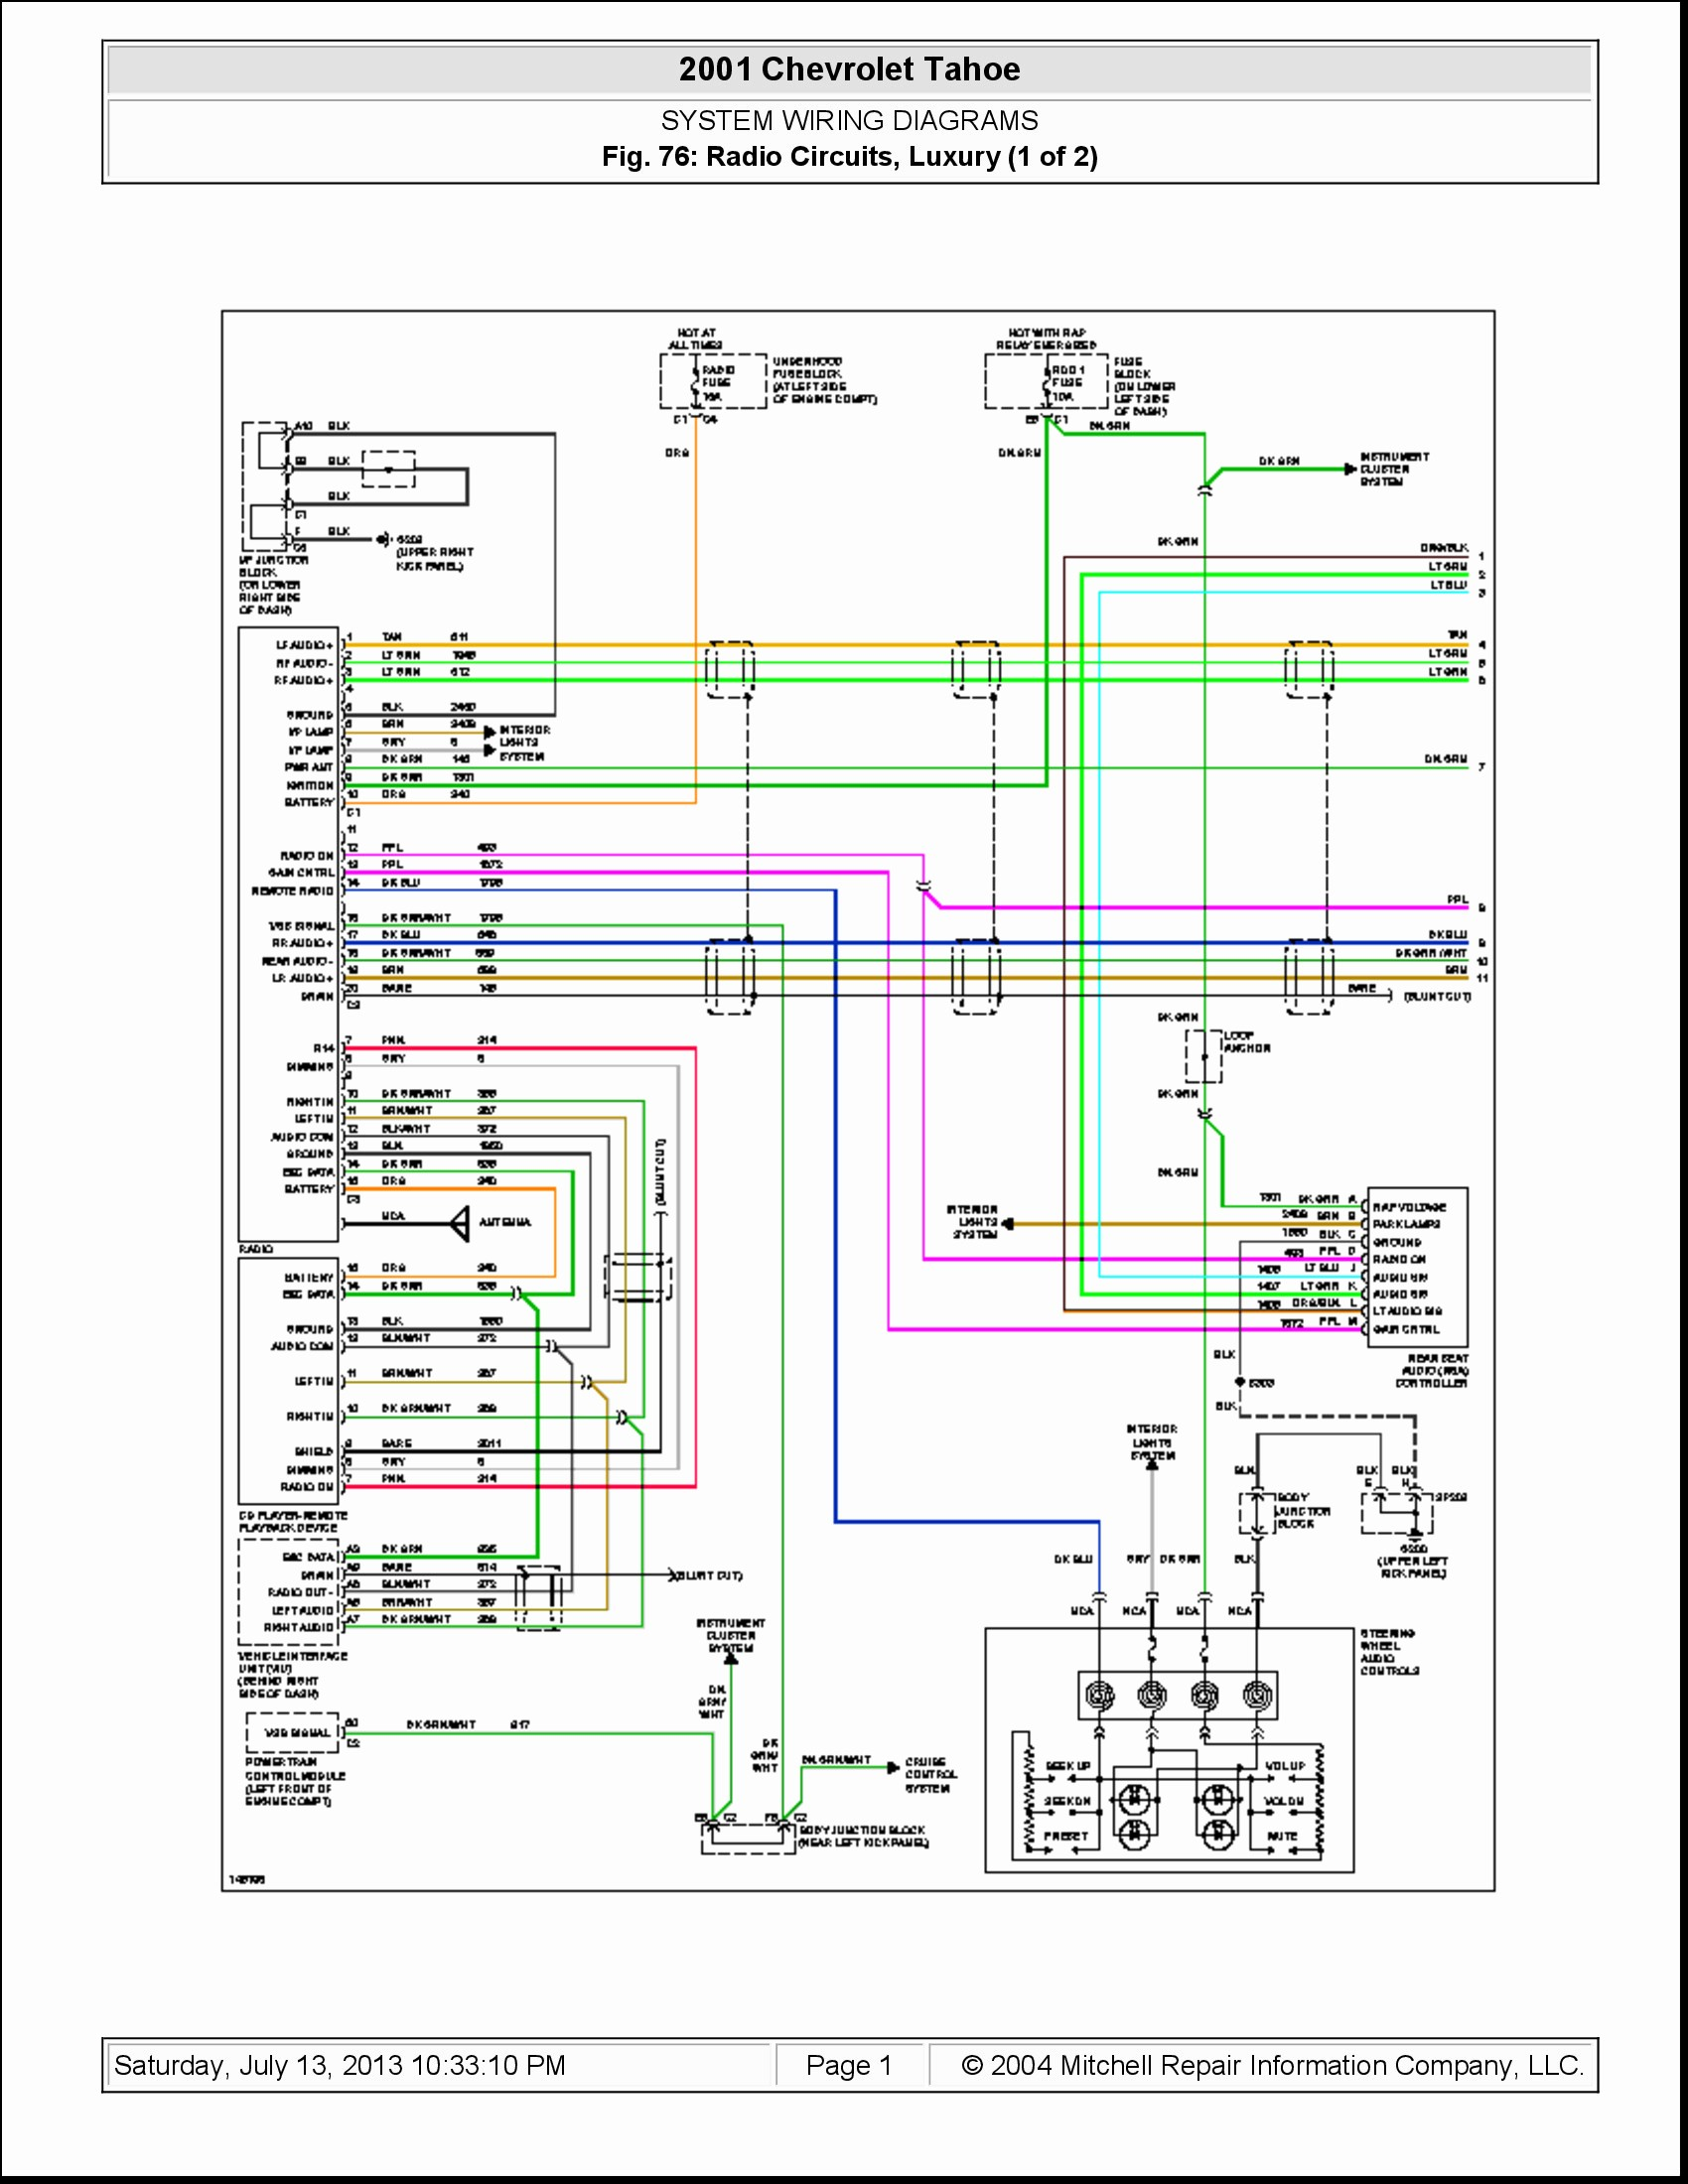 2005 Chevy Silverado Brake Light Wiring Diagram New 2001 Blazer Radio Wiring Diagram 2002 Chevy Trailblazer